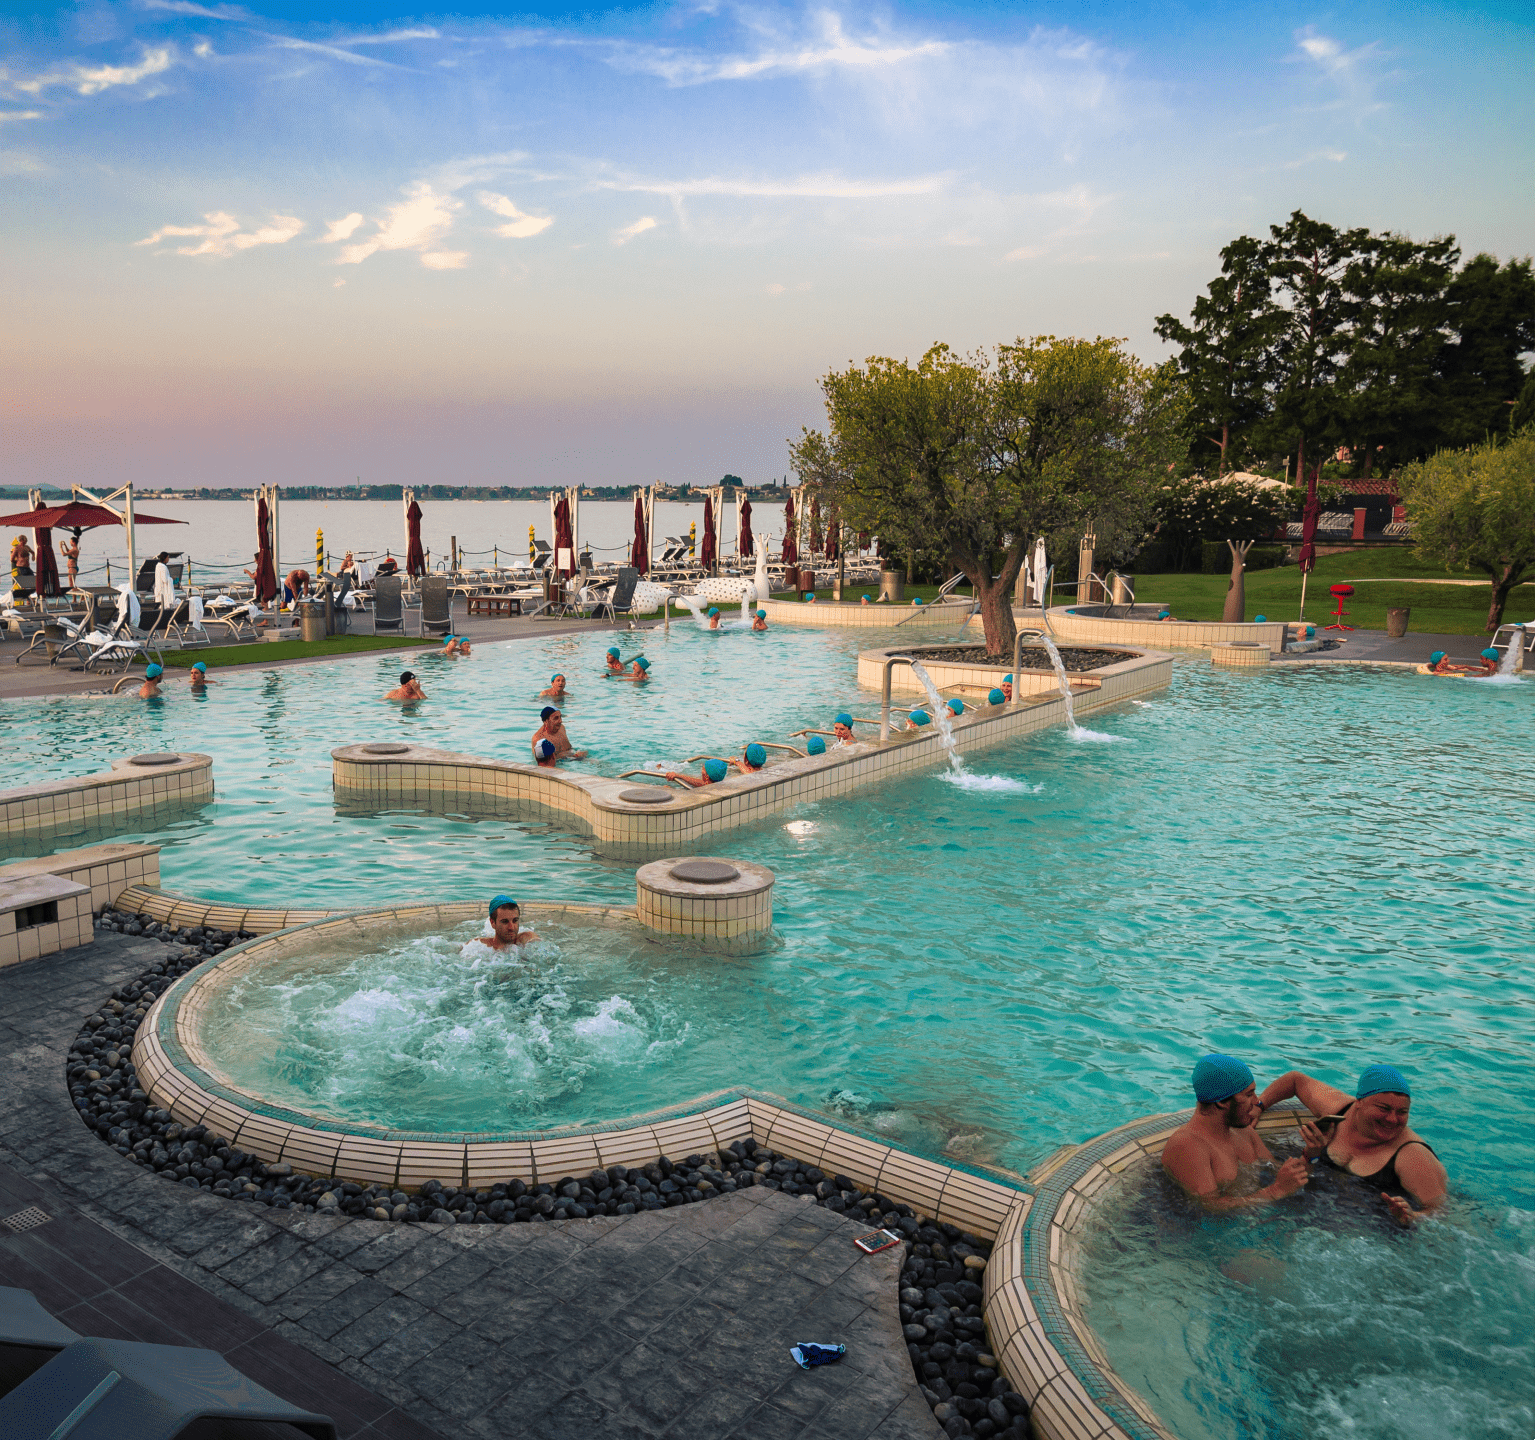 Thermal baths in and around Verona